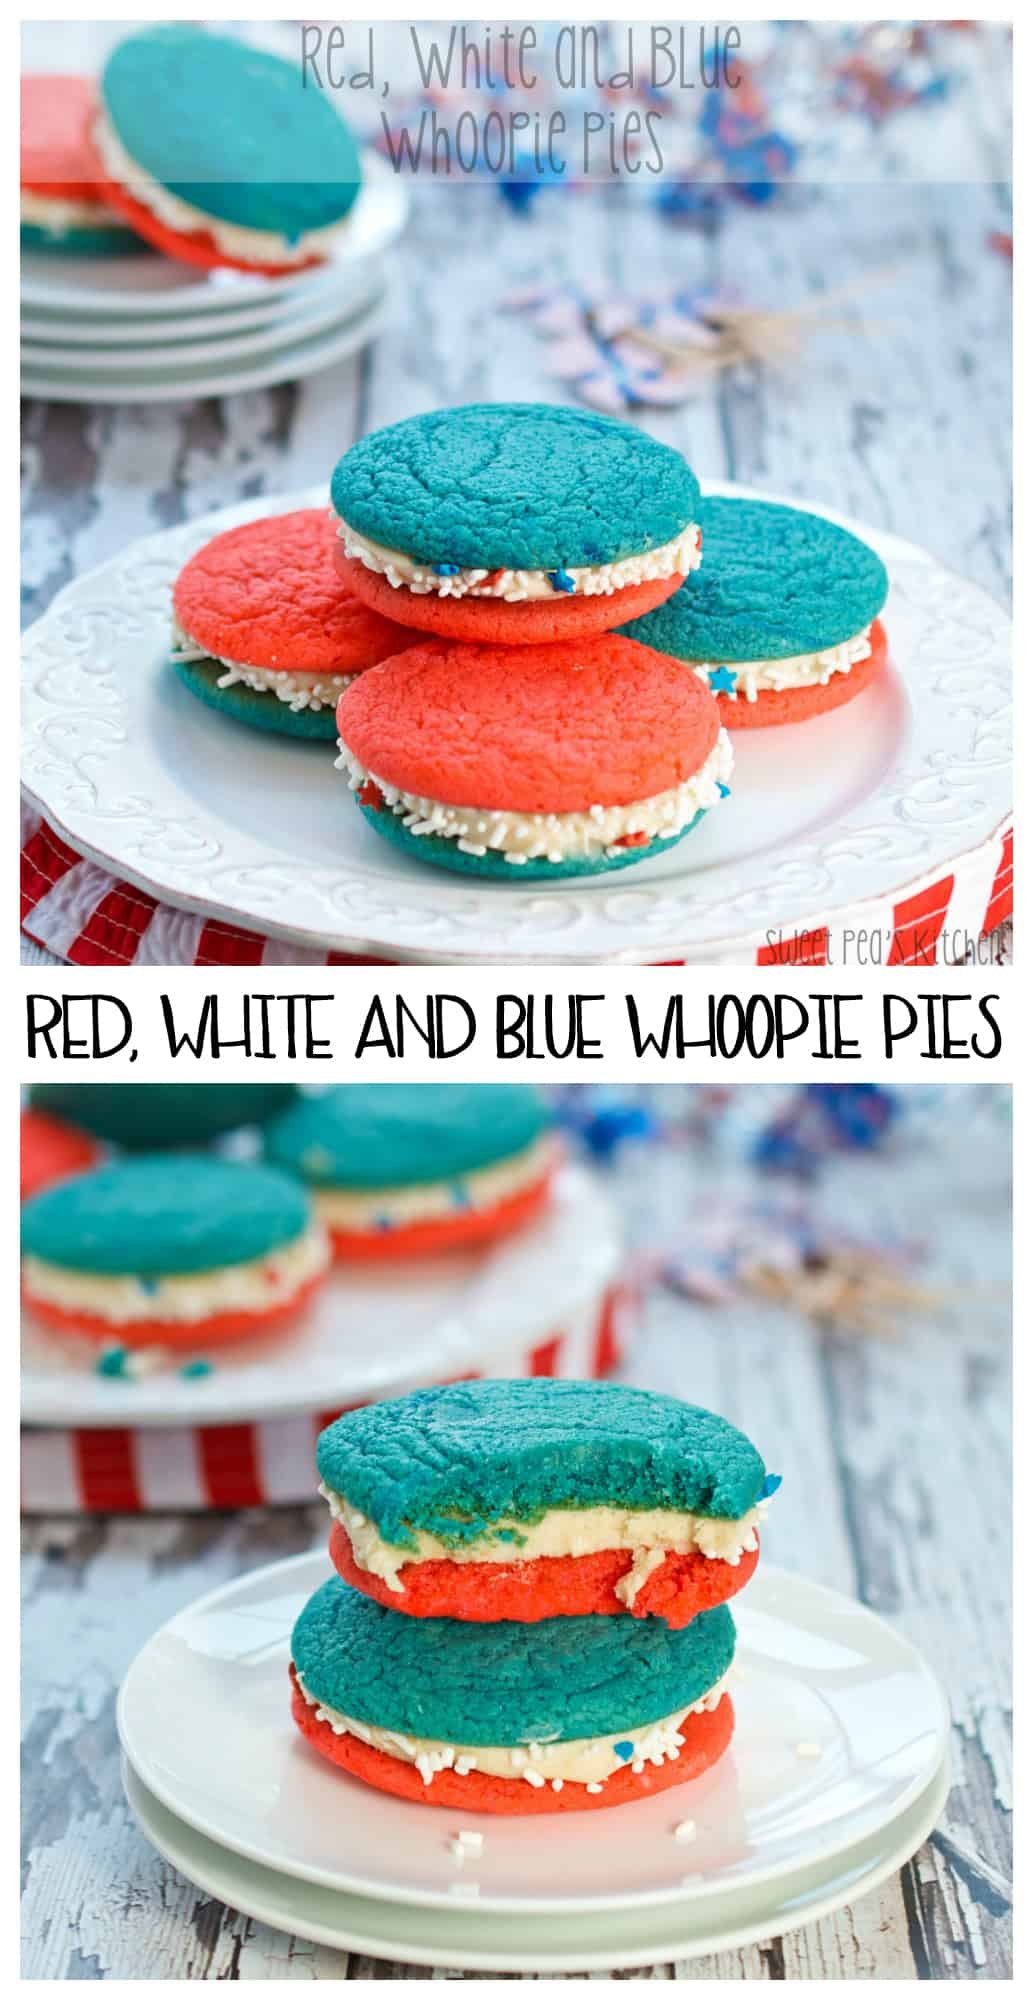 whoopie pies ready to eat - PIN IMAGE